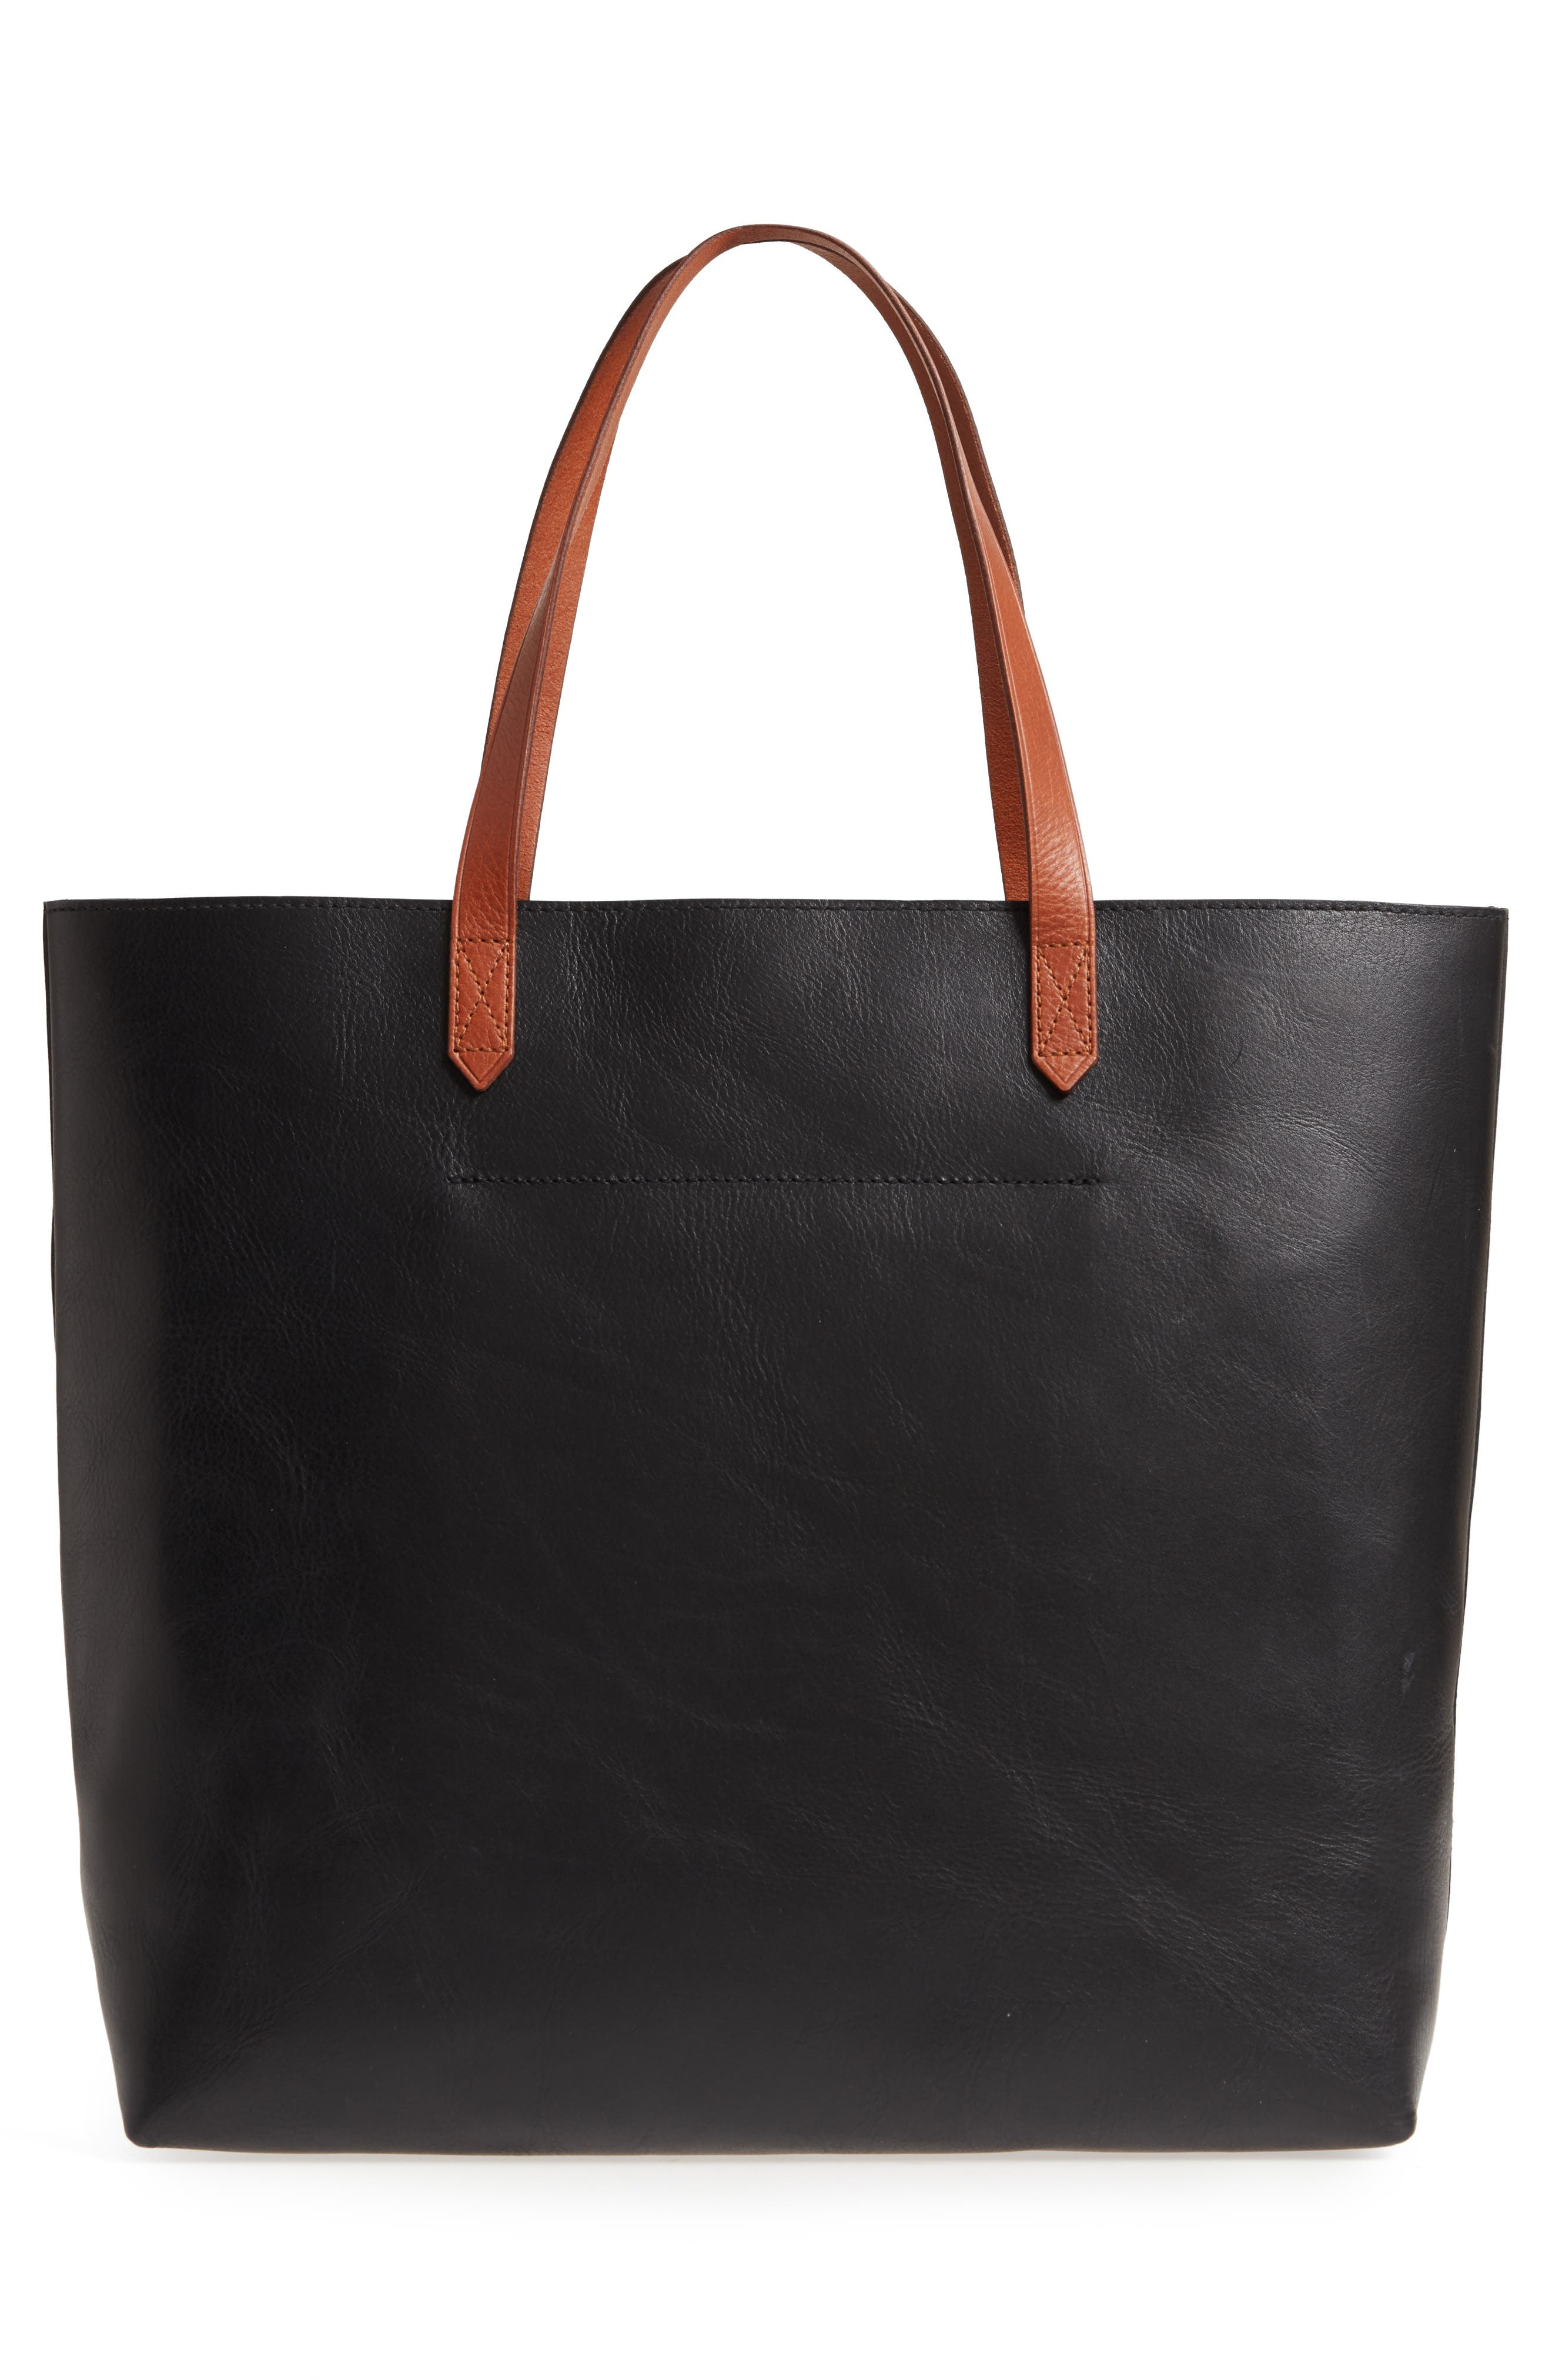 MADEWELL, Zip Top Transport Leather Tote, Alternate thumbnail 4, color, TRUE BLACK W/ BROWN